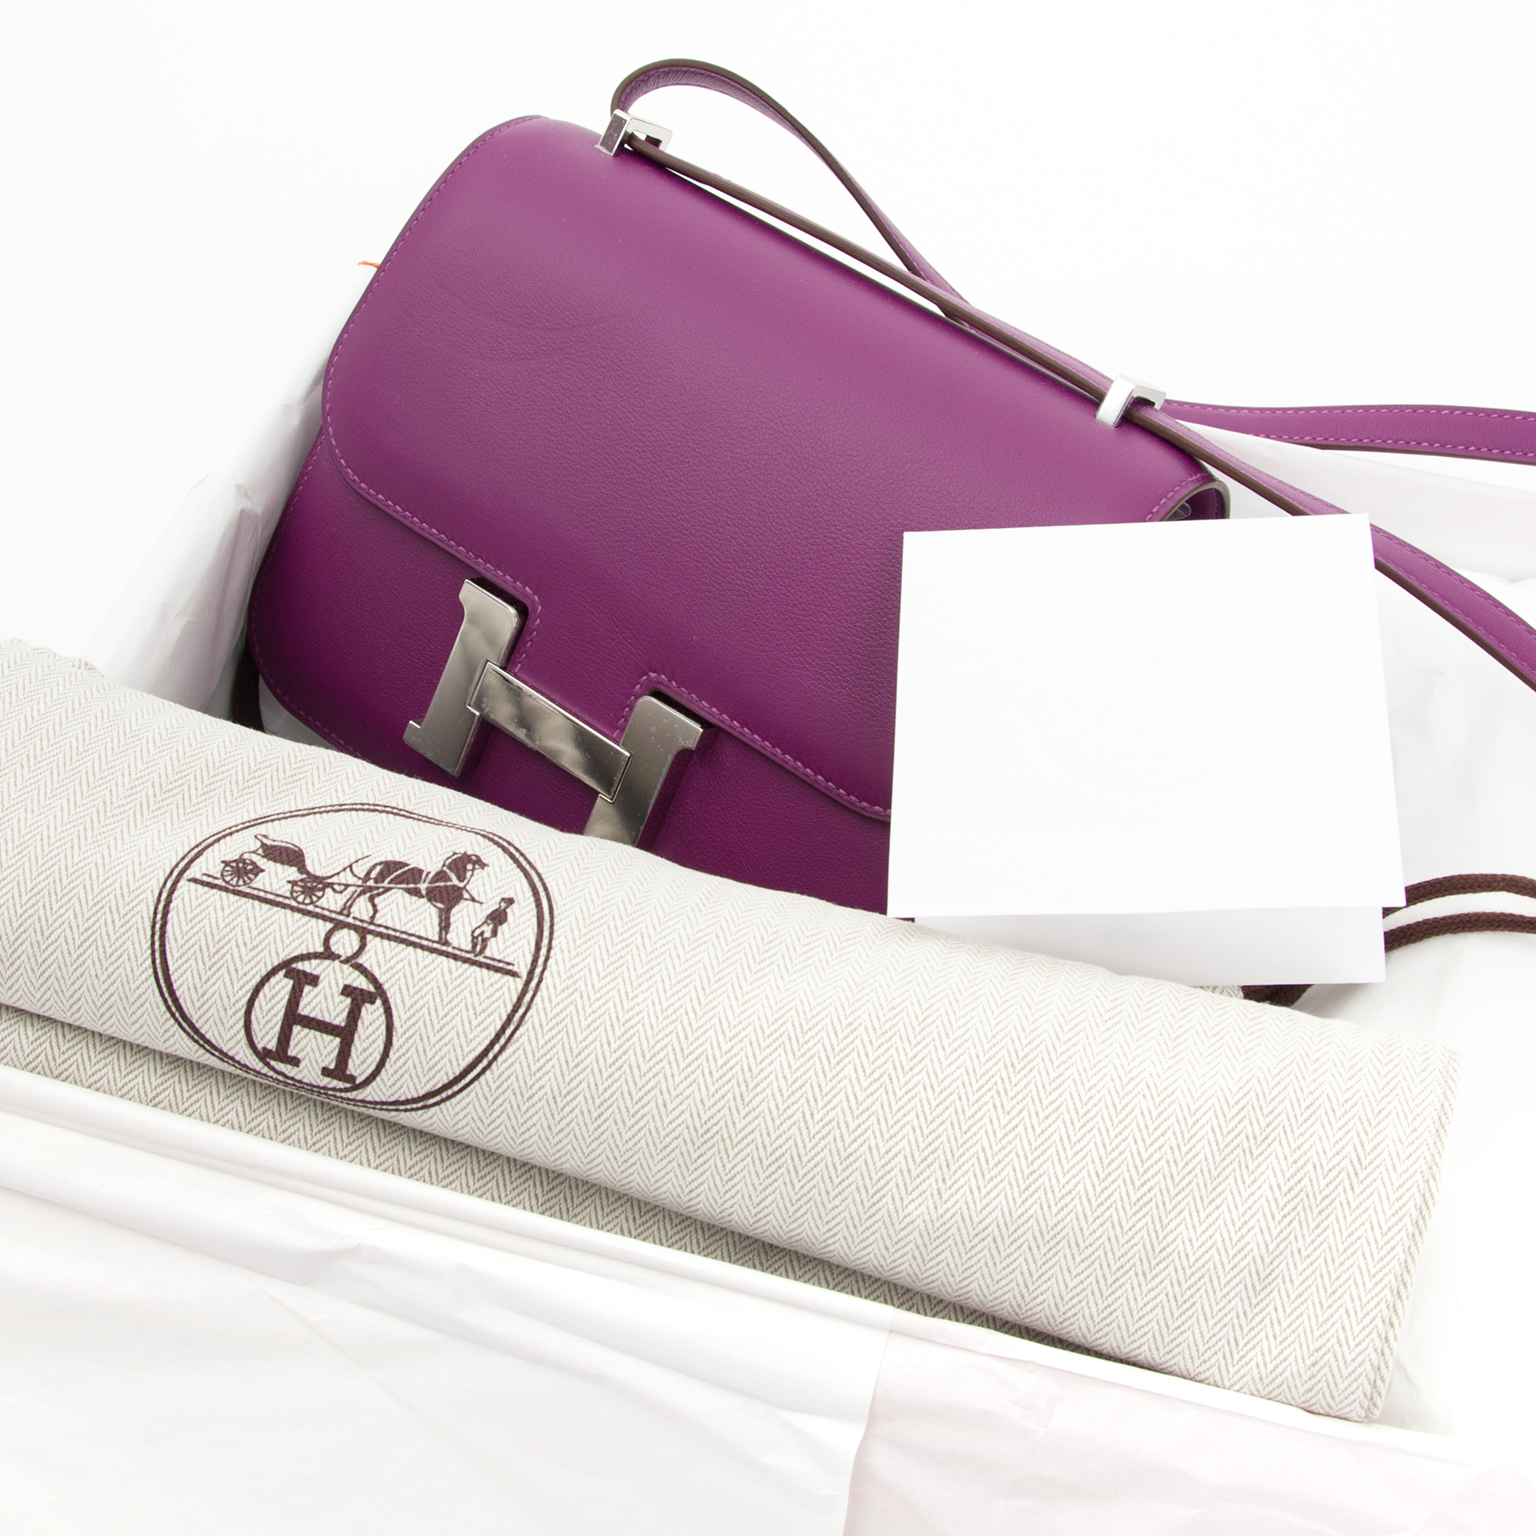 Acheter enligne seconde main sac a main Brand New Hermes Anemone Constance Mini Veau Swift PHW (